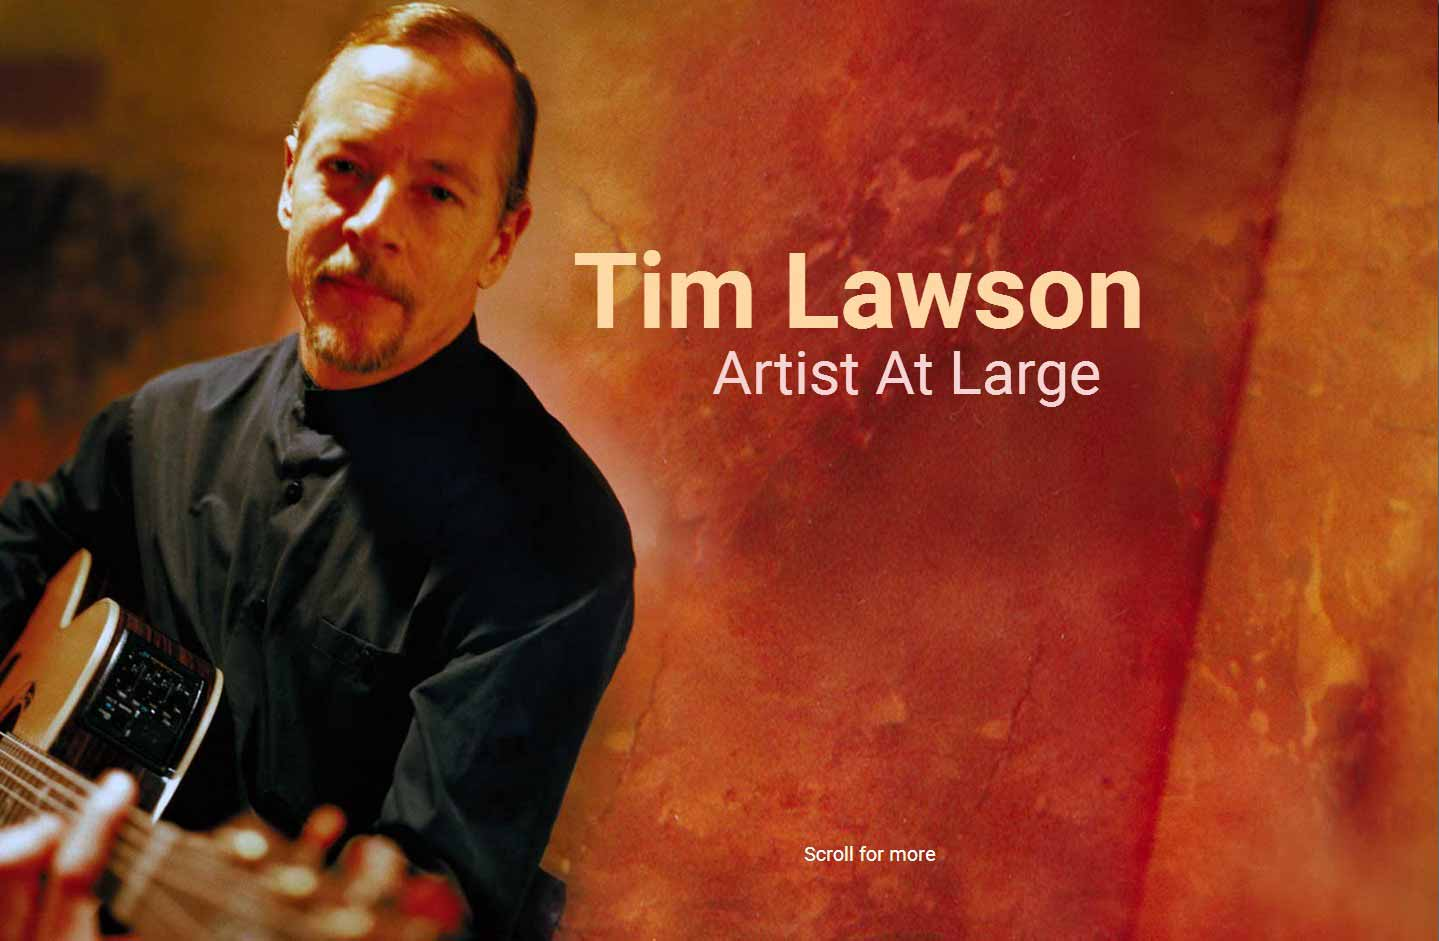 Tim Lawson, Artist At Large